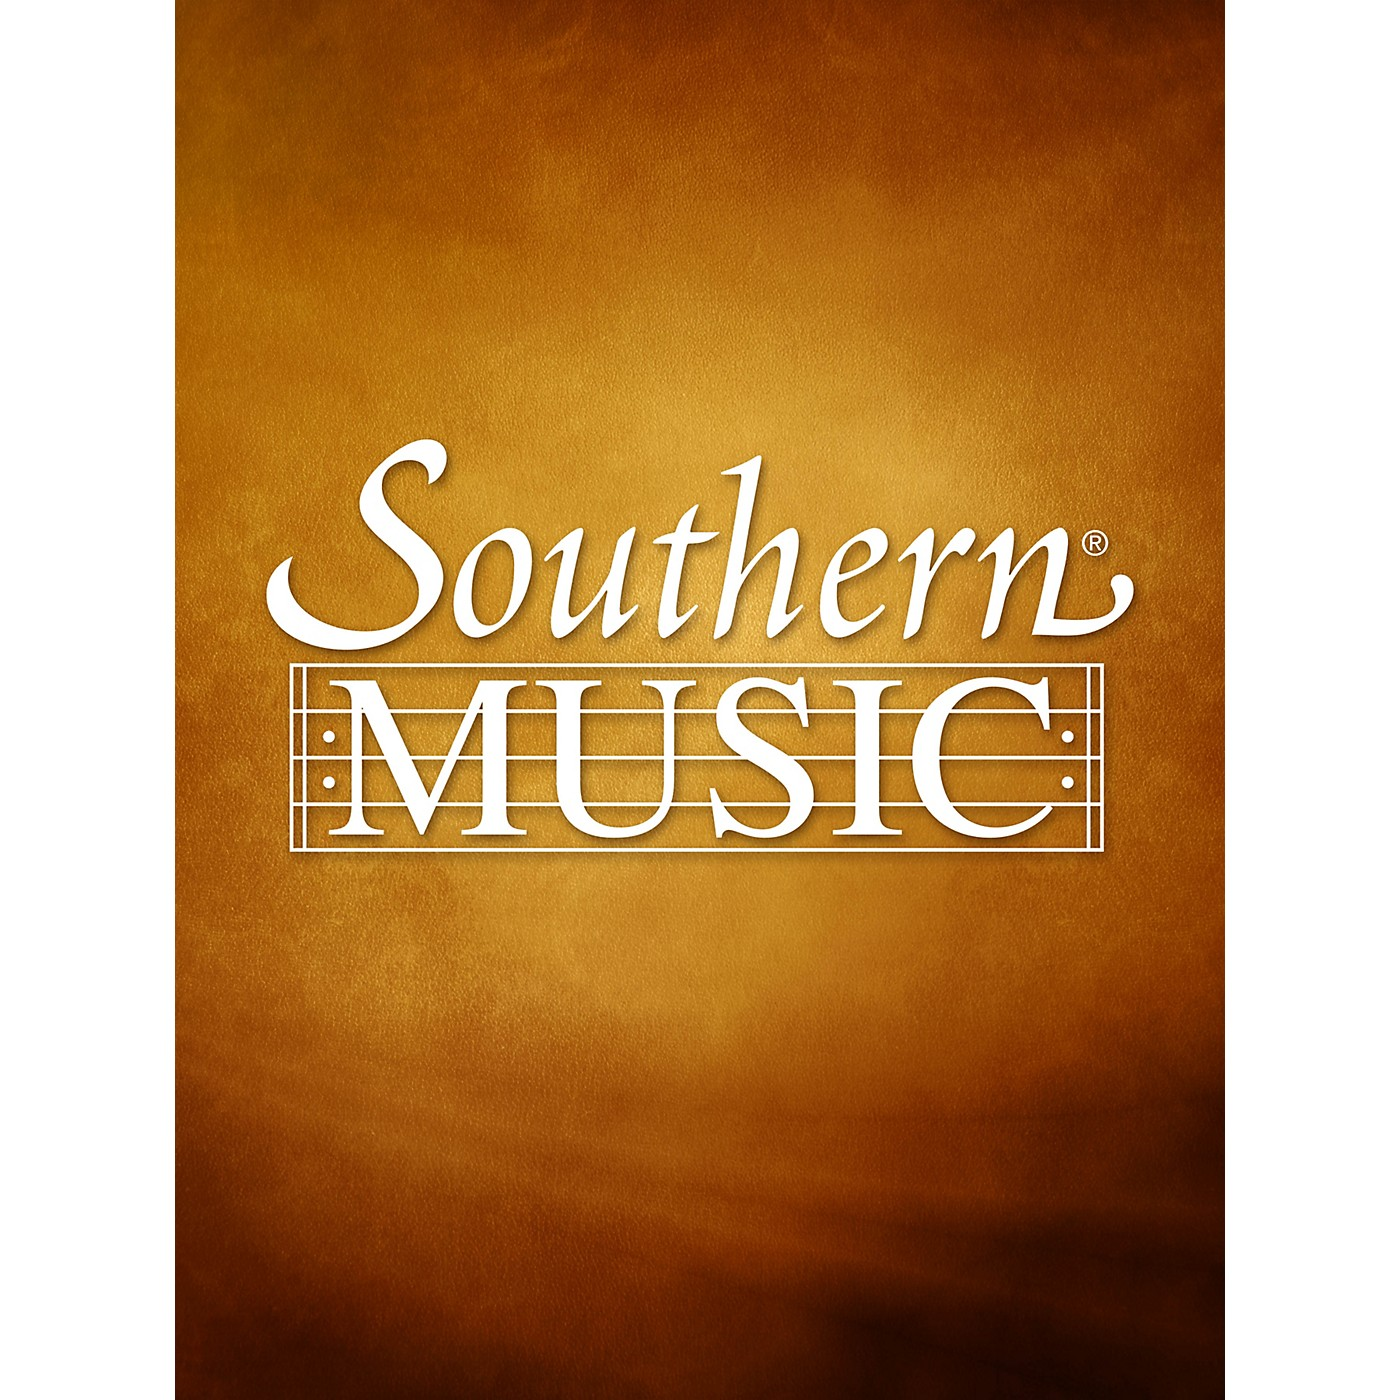 Hal Leonard Doodlers Delight Southern Music Series Composed by Berbiguier, Benoiit-tranquille thumbnail